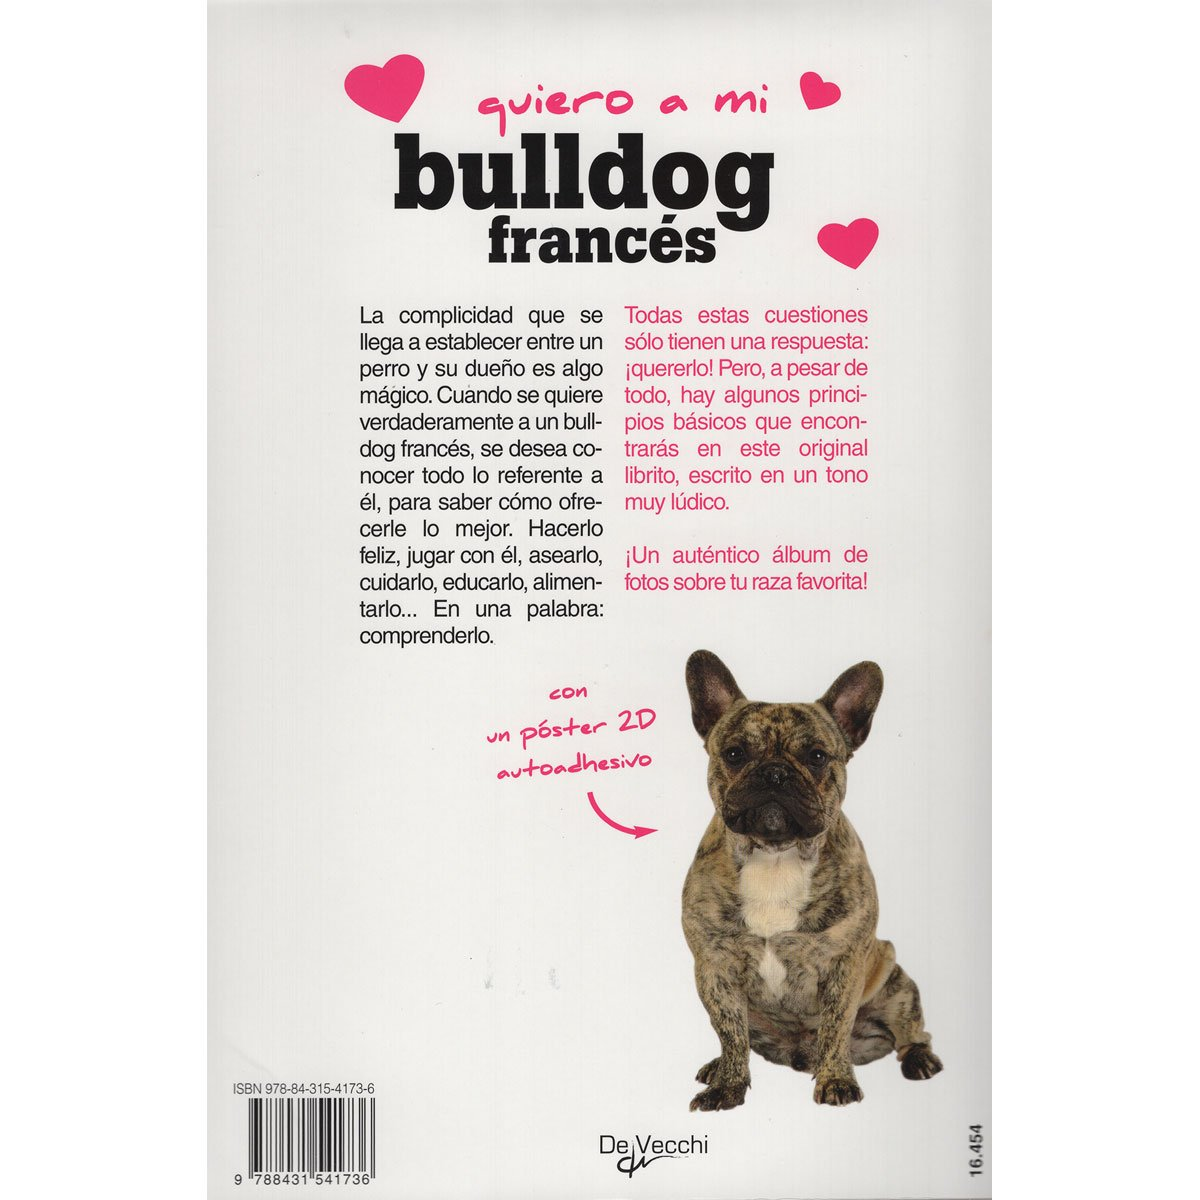 Libro Bulldog Frances Quiero A Mi Bulldog Francés Devecchi Sears Com Mx Me